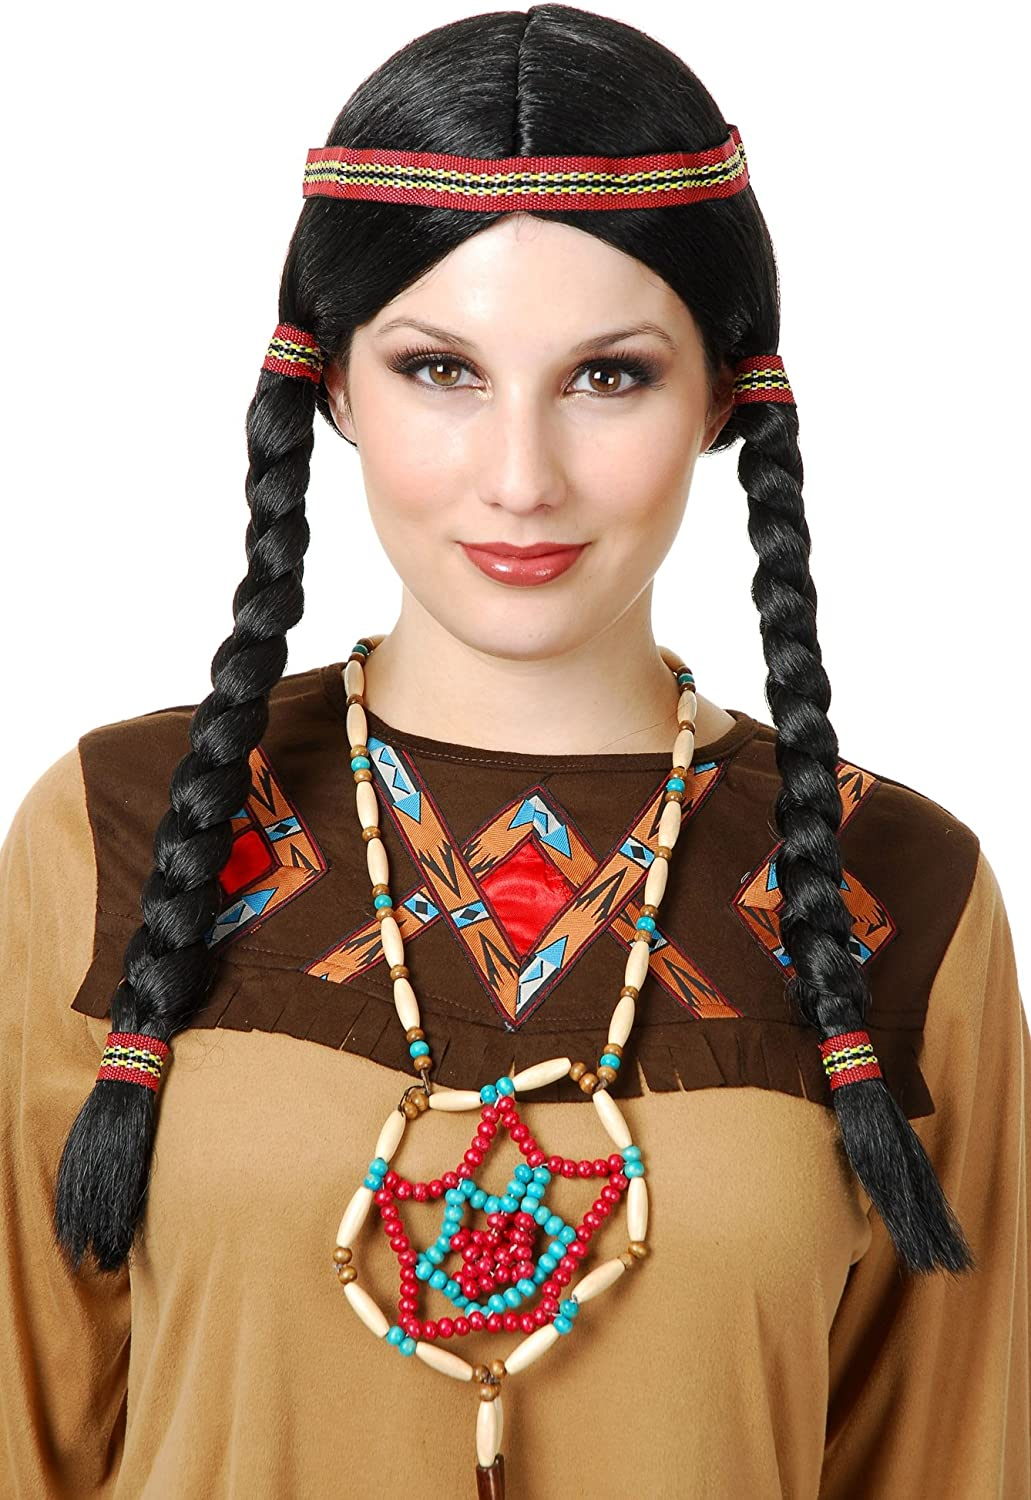 Charades Women's Indian OFFicial site Maiden Costume Wig Special sale item